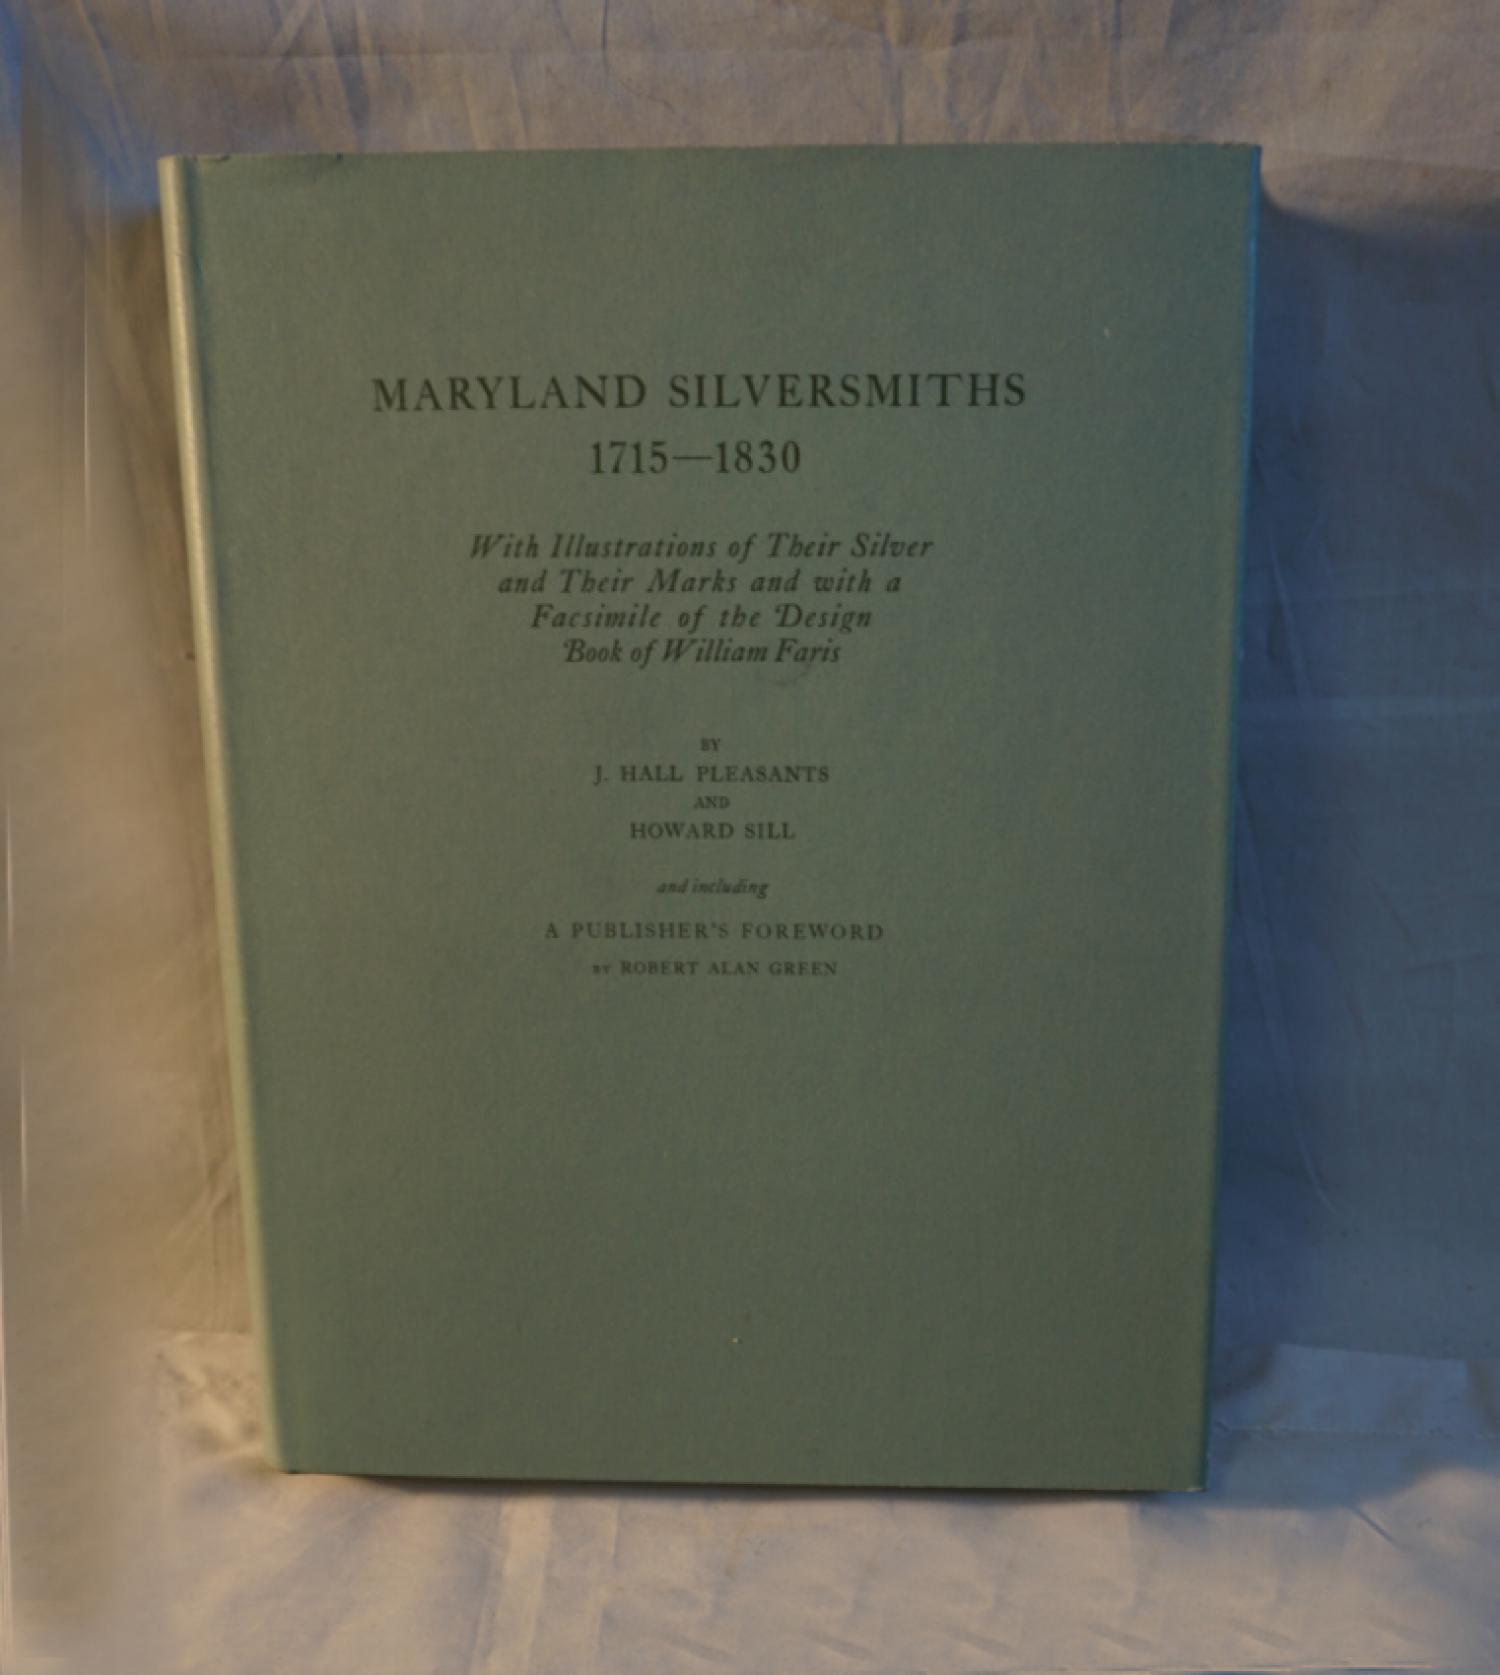 Maryland Silversmiths 1715 to 1830  Robert Green limited edition 1972